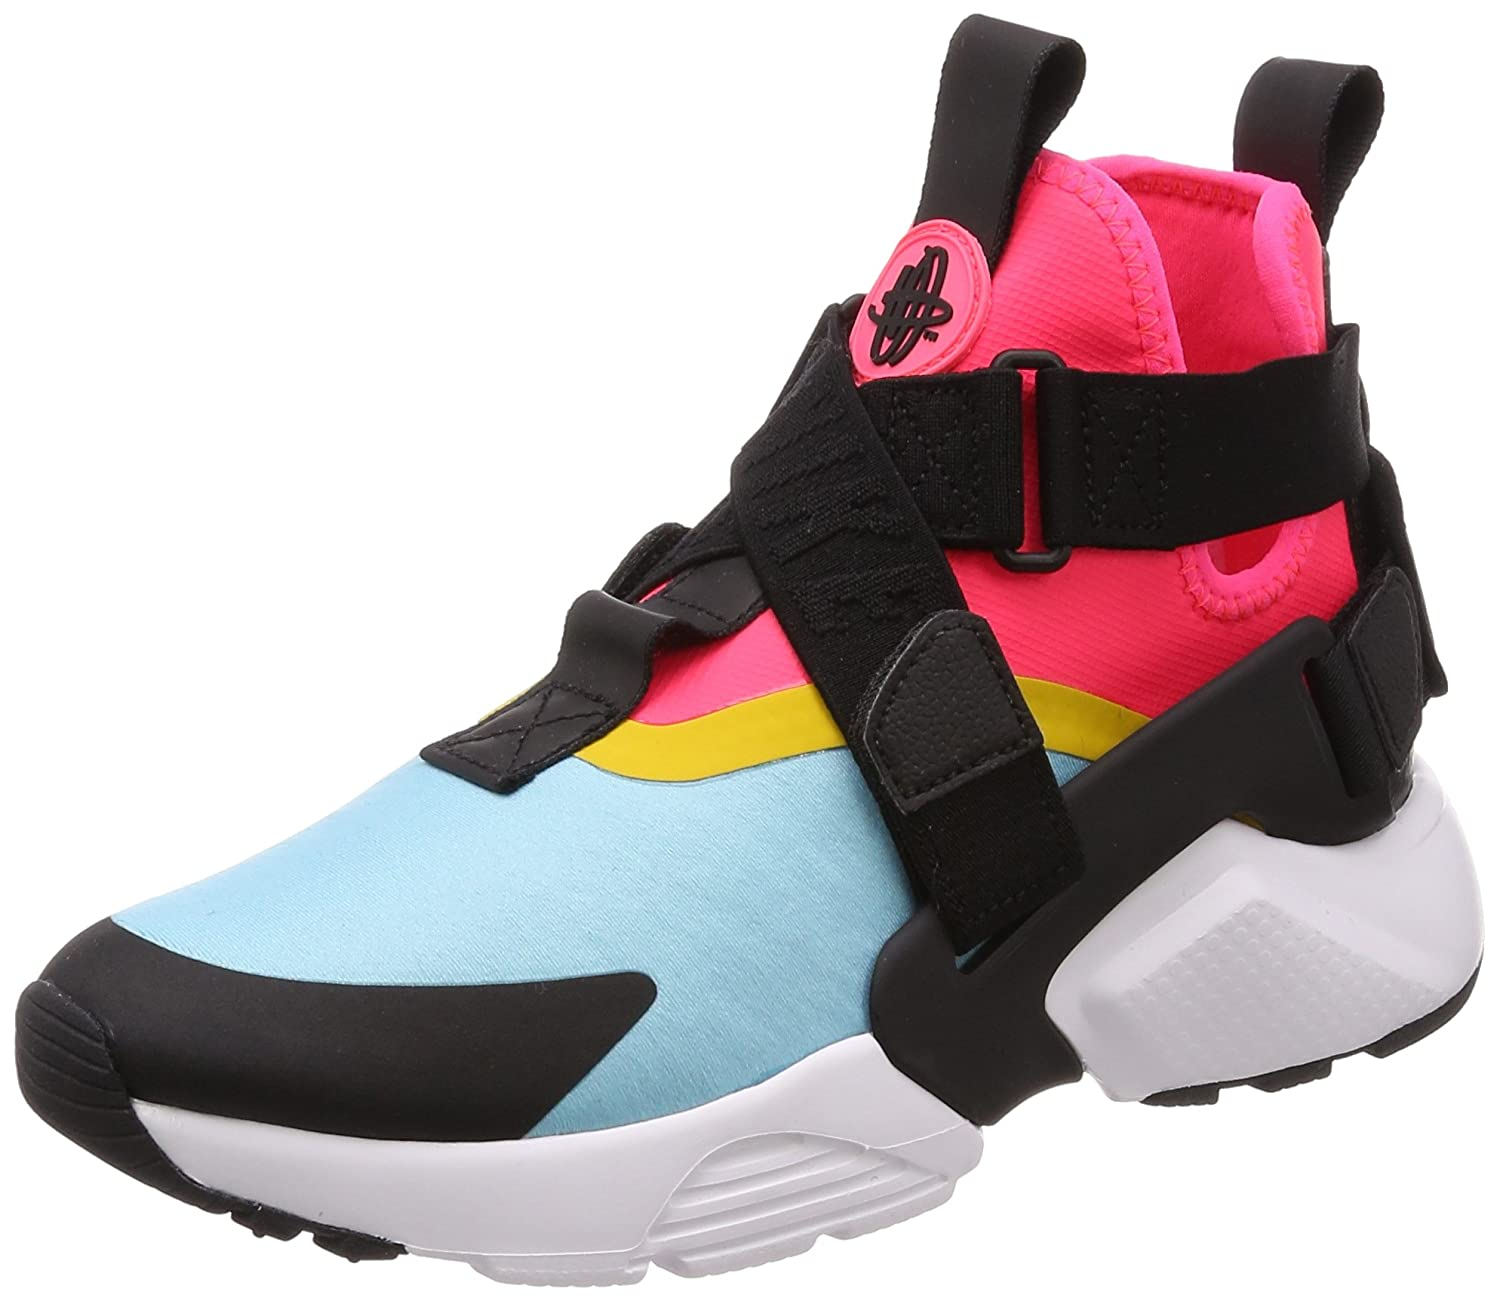 fd857427038 Nike Womens Air Huarache City Shoe (9 M US, Bleached Aqua/Black ...